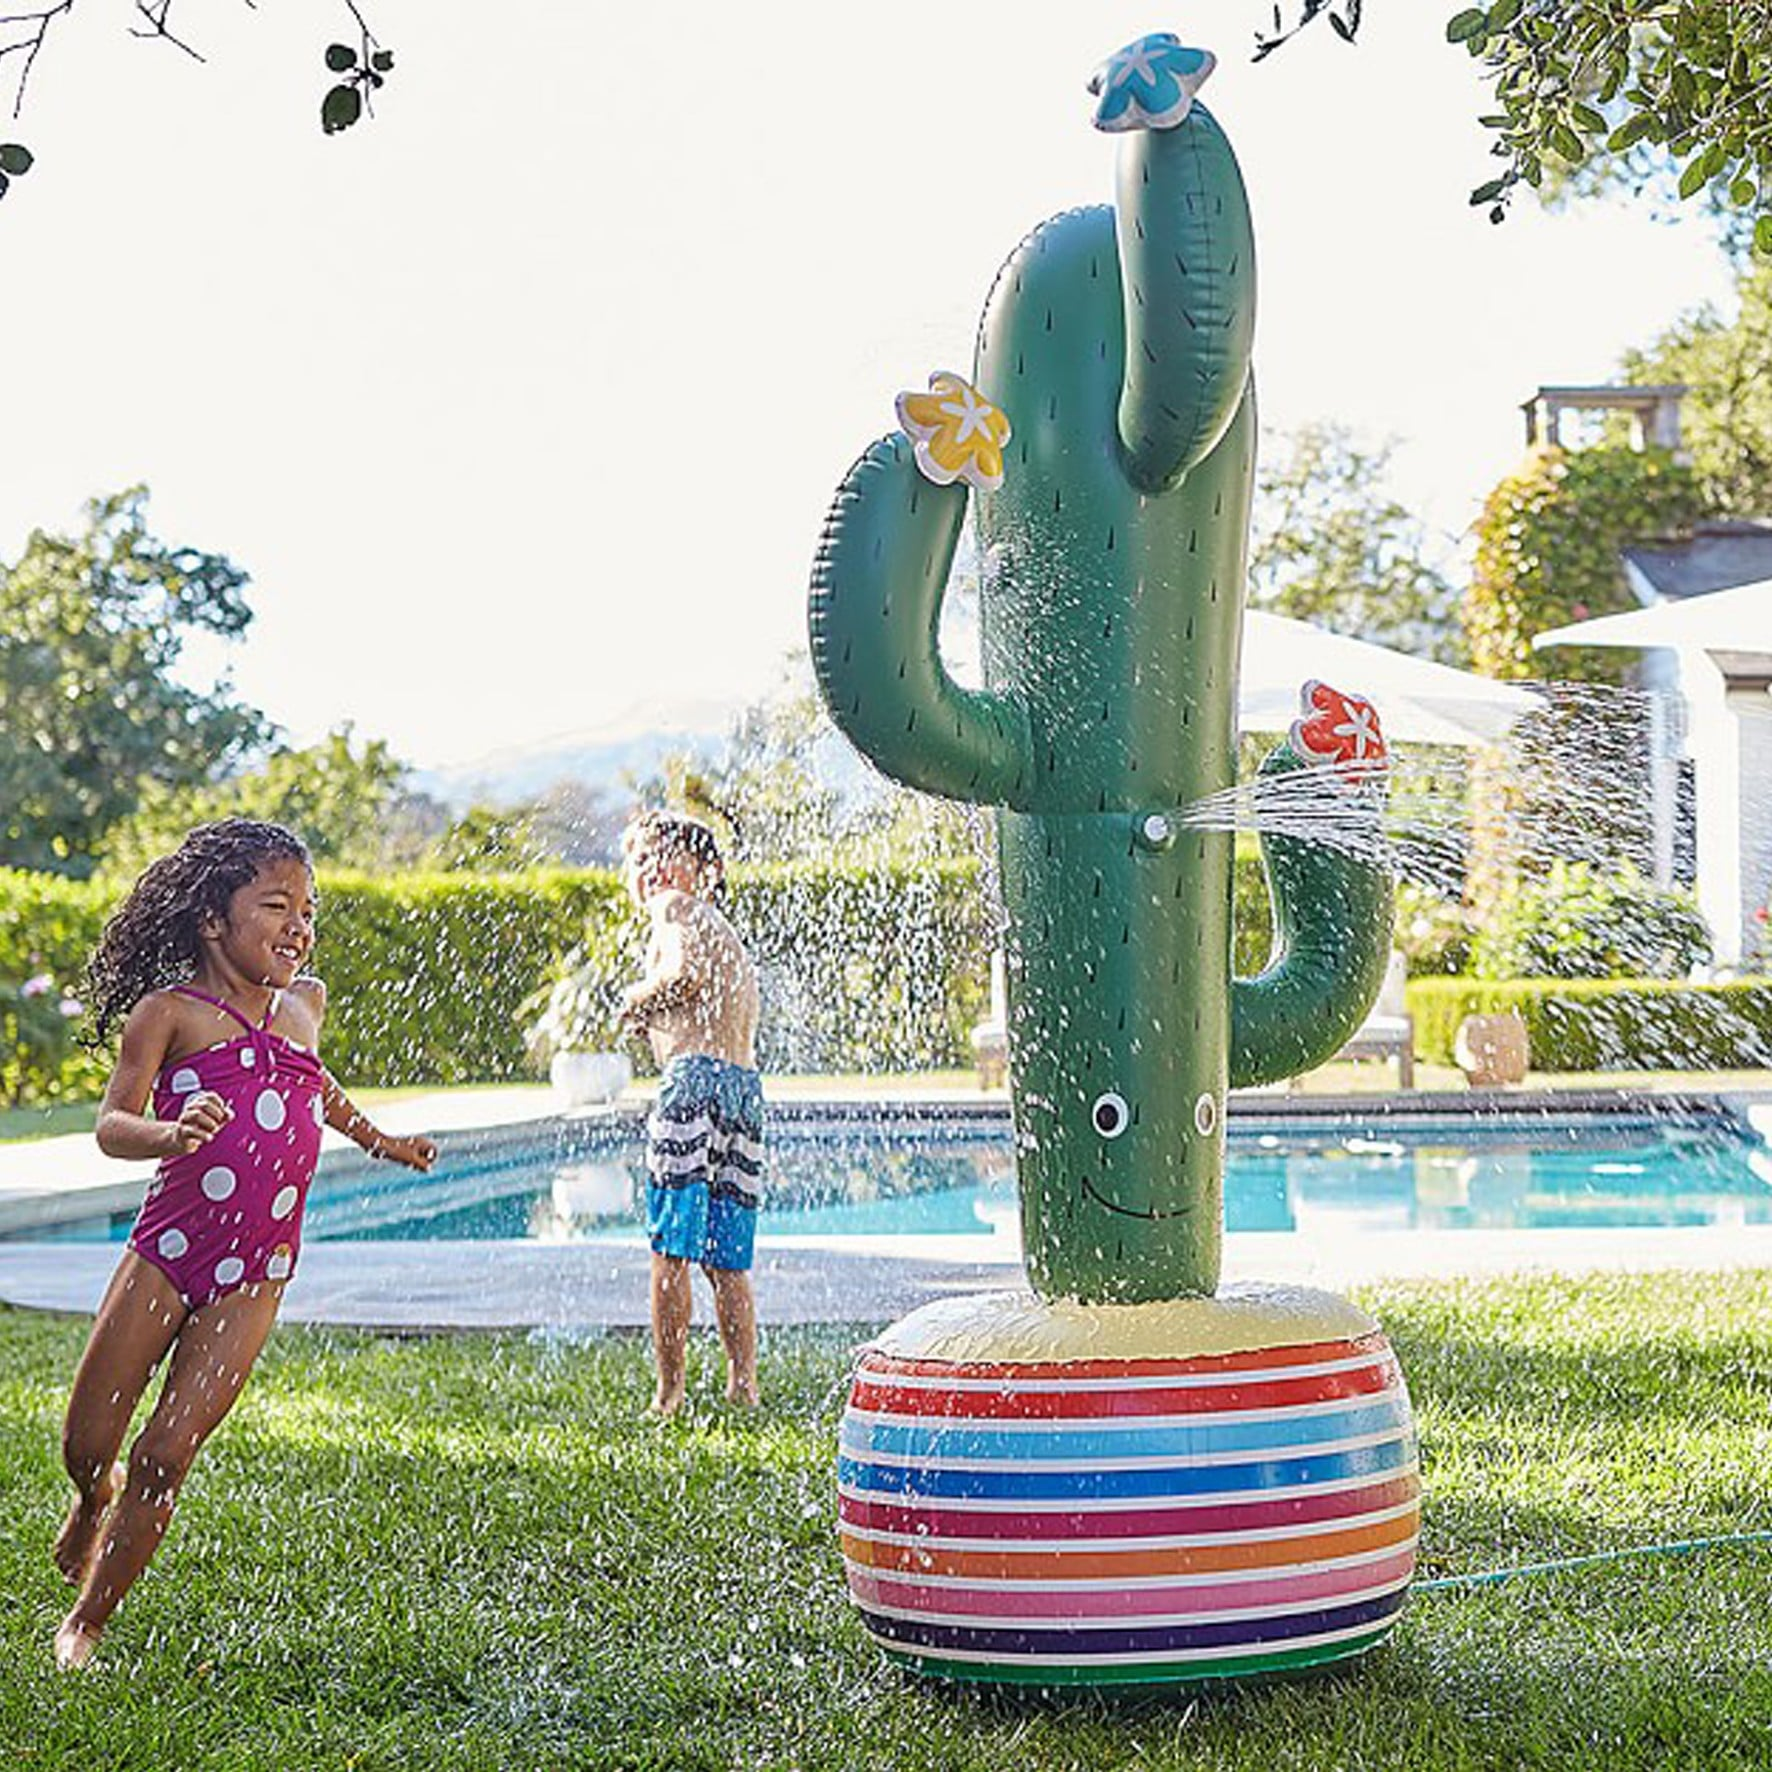 Best Yard Sprinklers For Kids 2018 | POPSUGAR Family